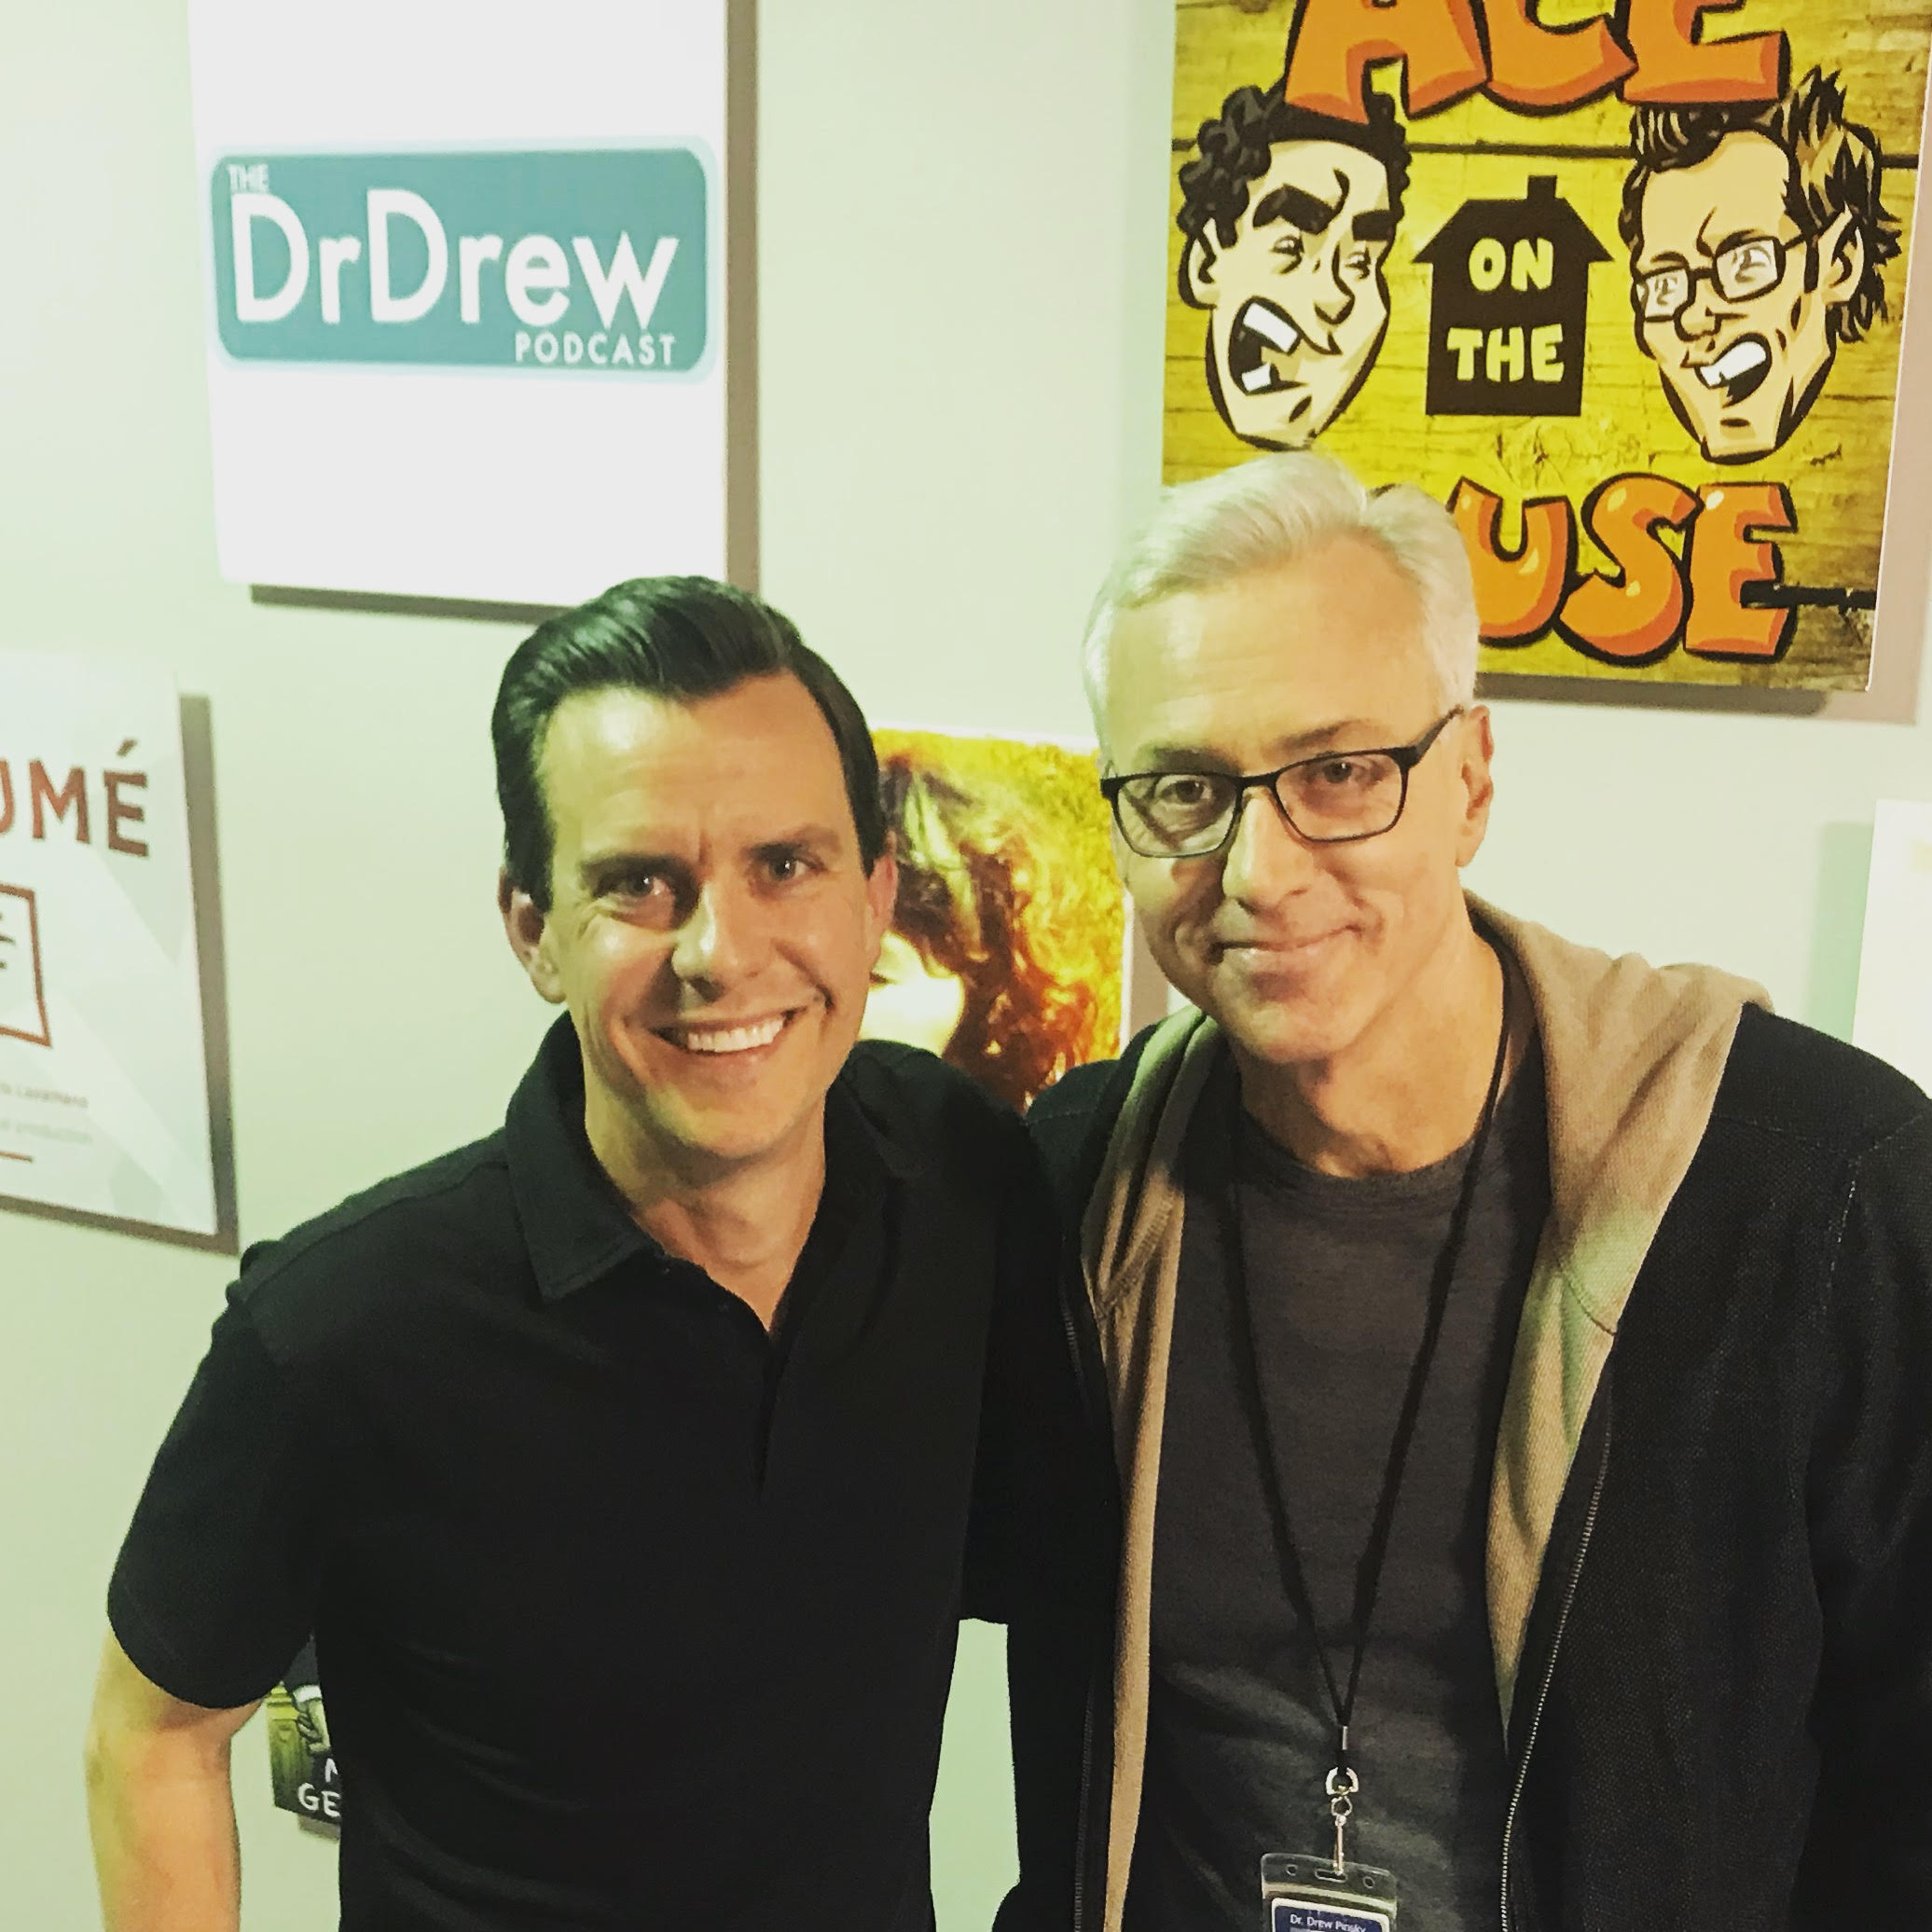 Stutts with Dr. Drew after recording The Dr. Drew Podcast